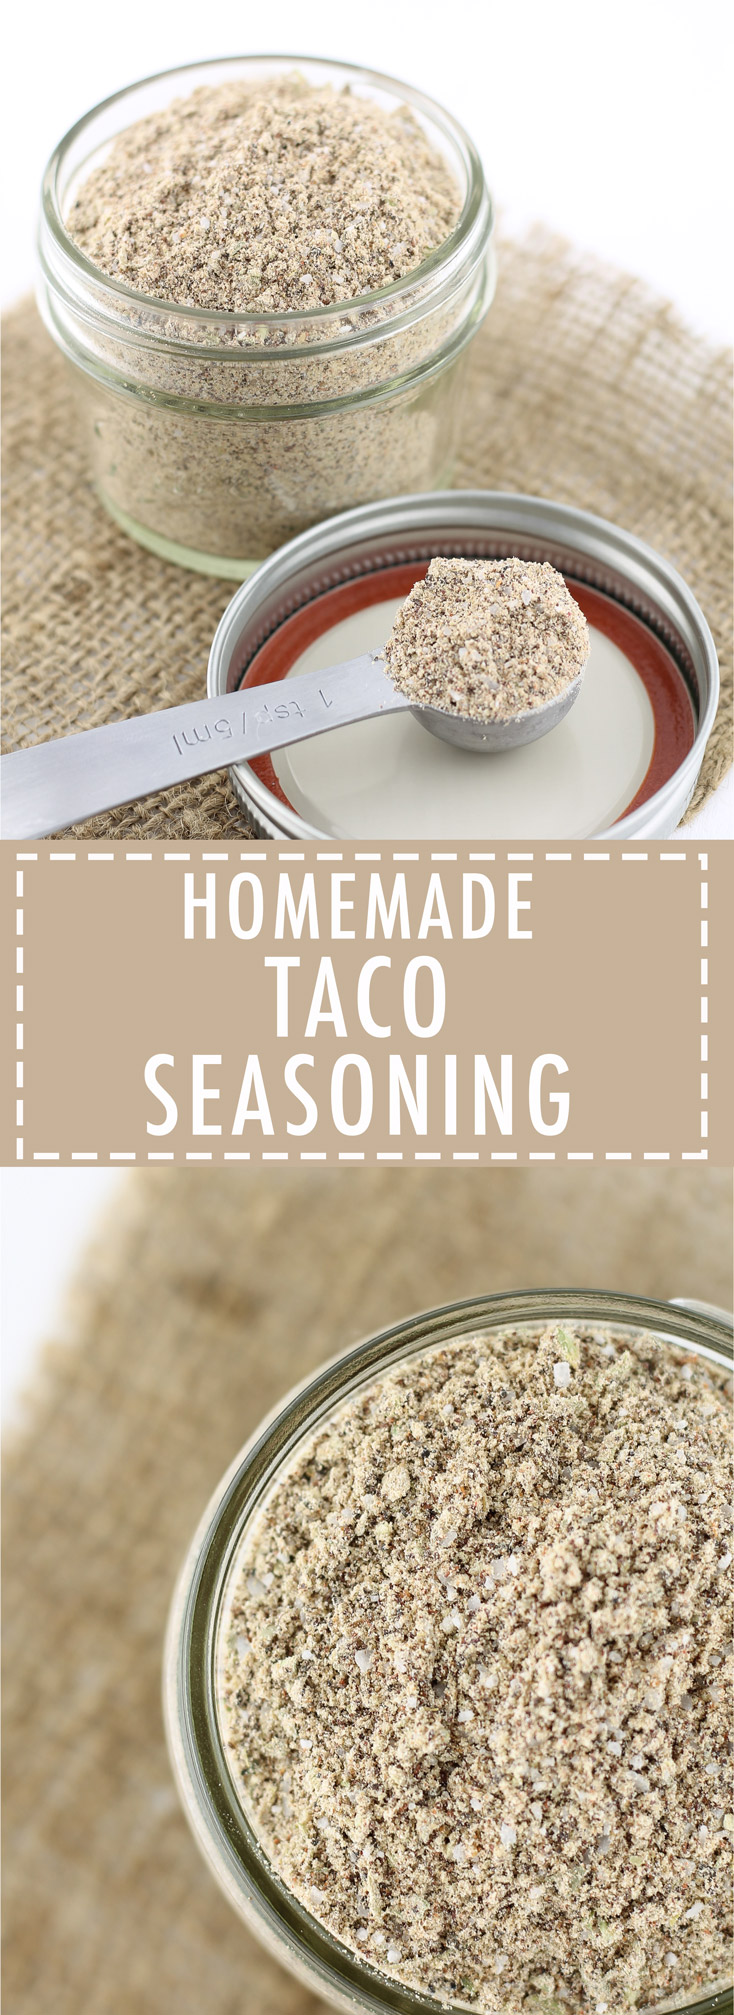 Homemade, Taco Seasoning, Paleo, Whole30, Real Food, Non-Processed, Flavorful,